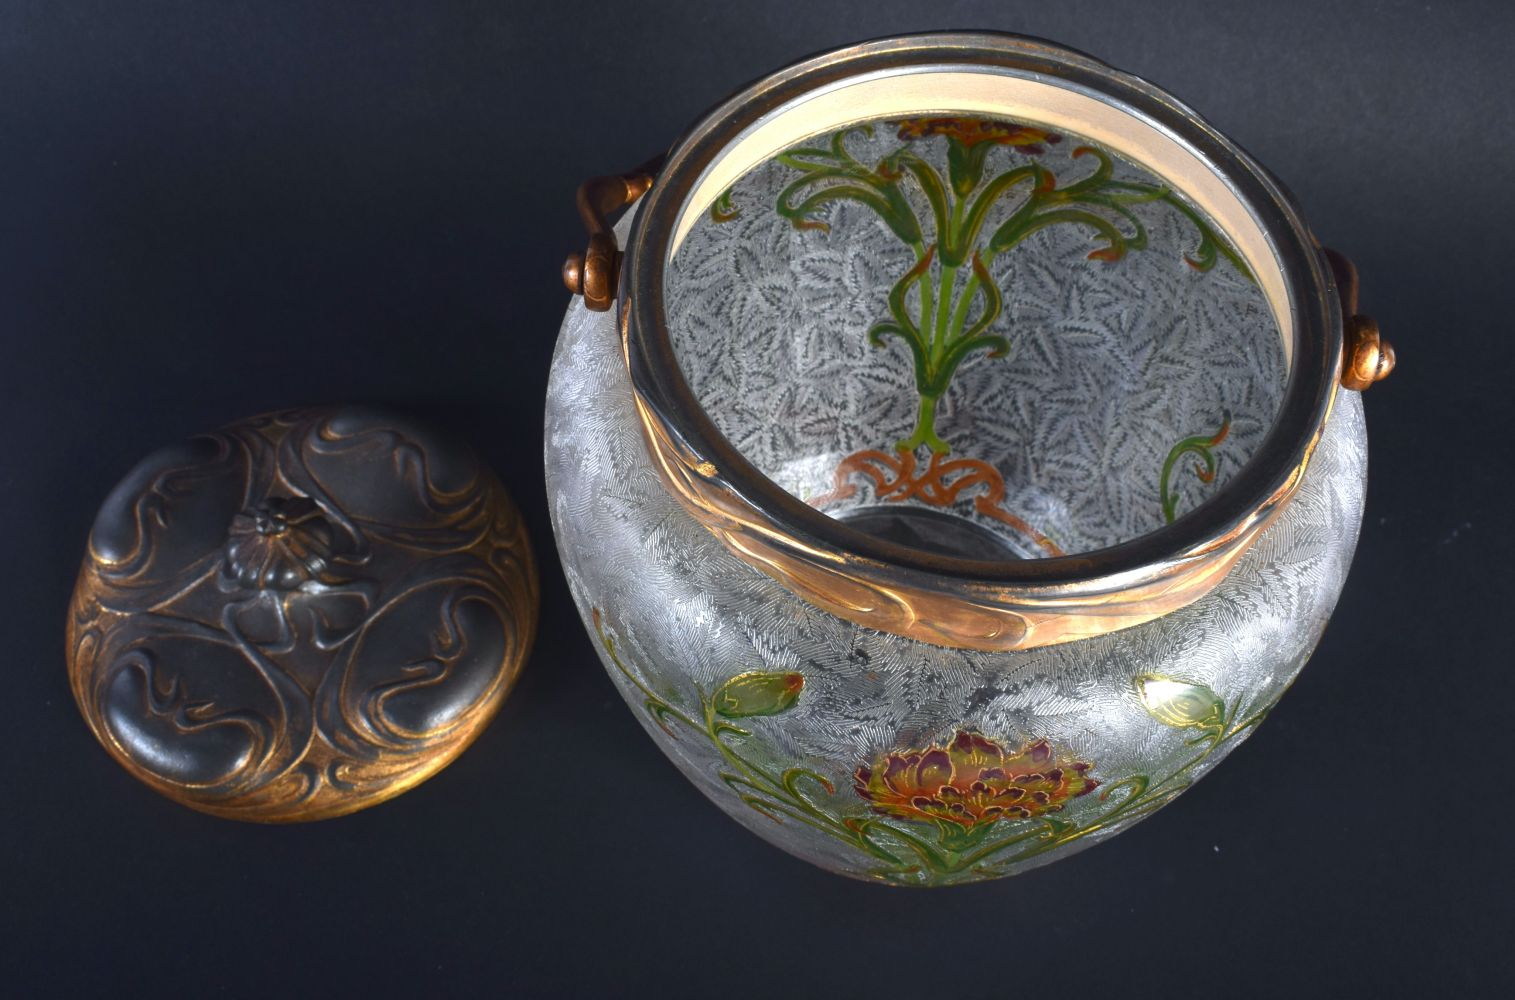 A FINE FRENCH ART NOUVEAU ENAMELLED FROSTED GLASS BISCUIT BARREL possibly by Legras, painted with st - Image 3 of 4